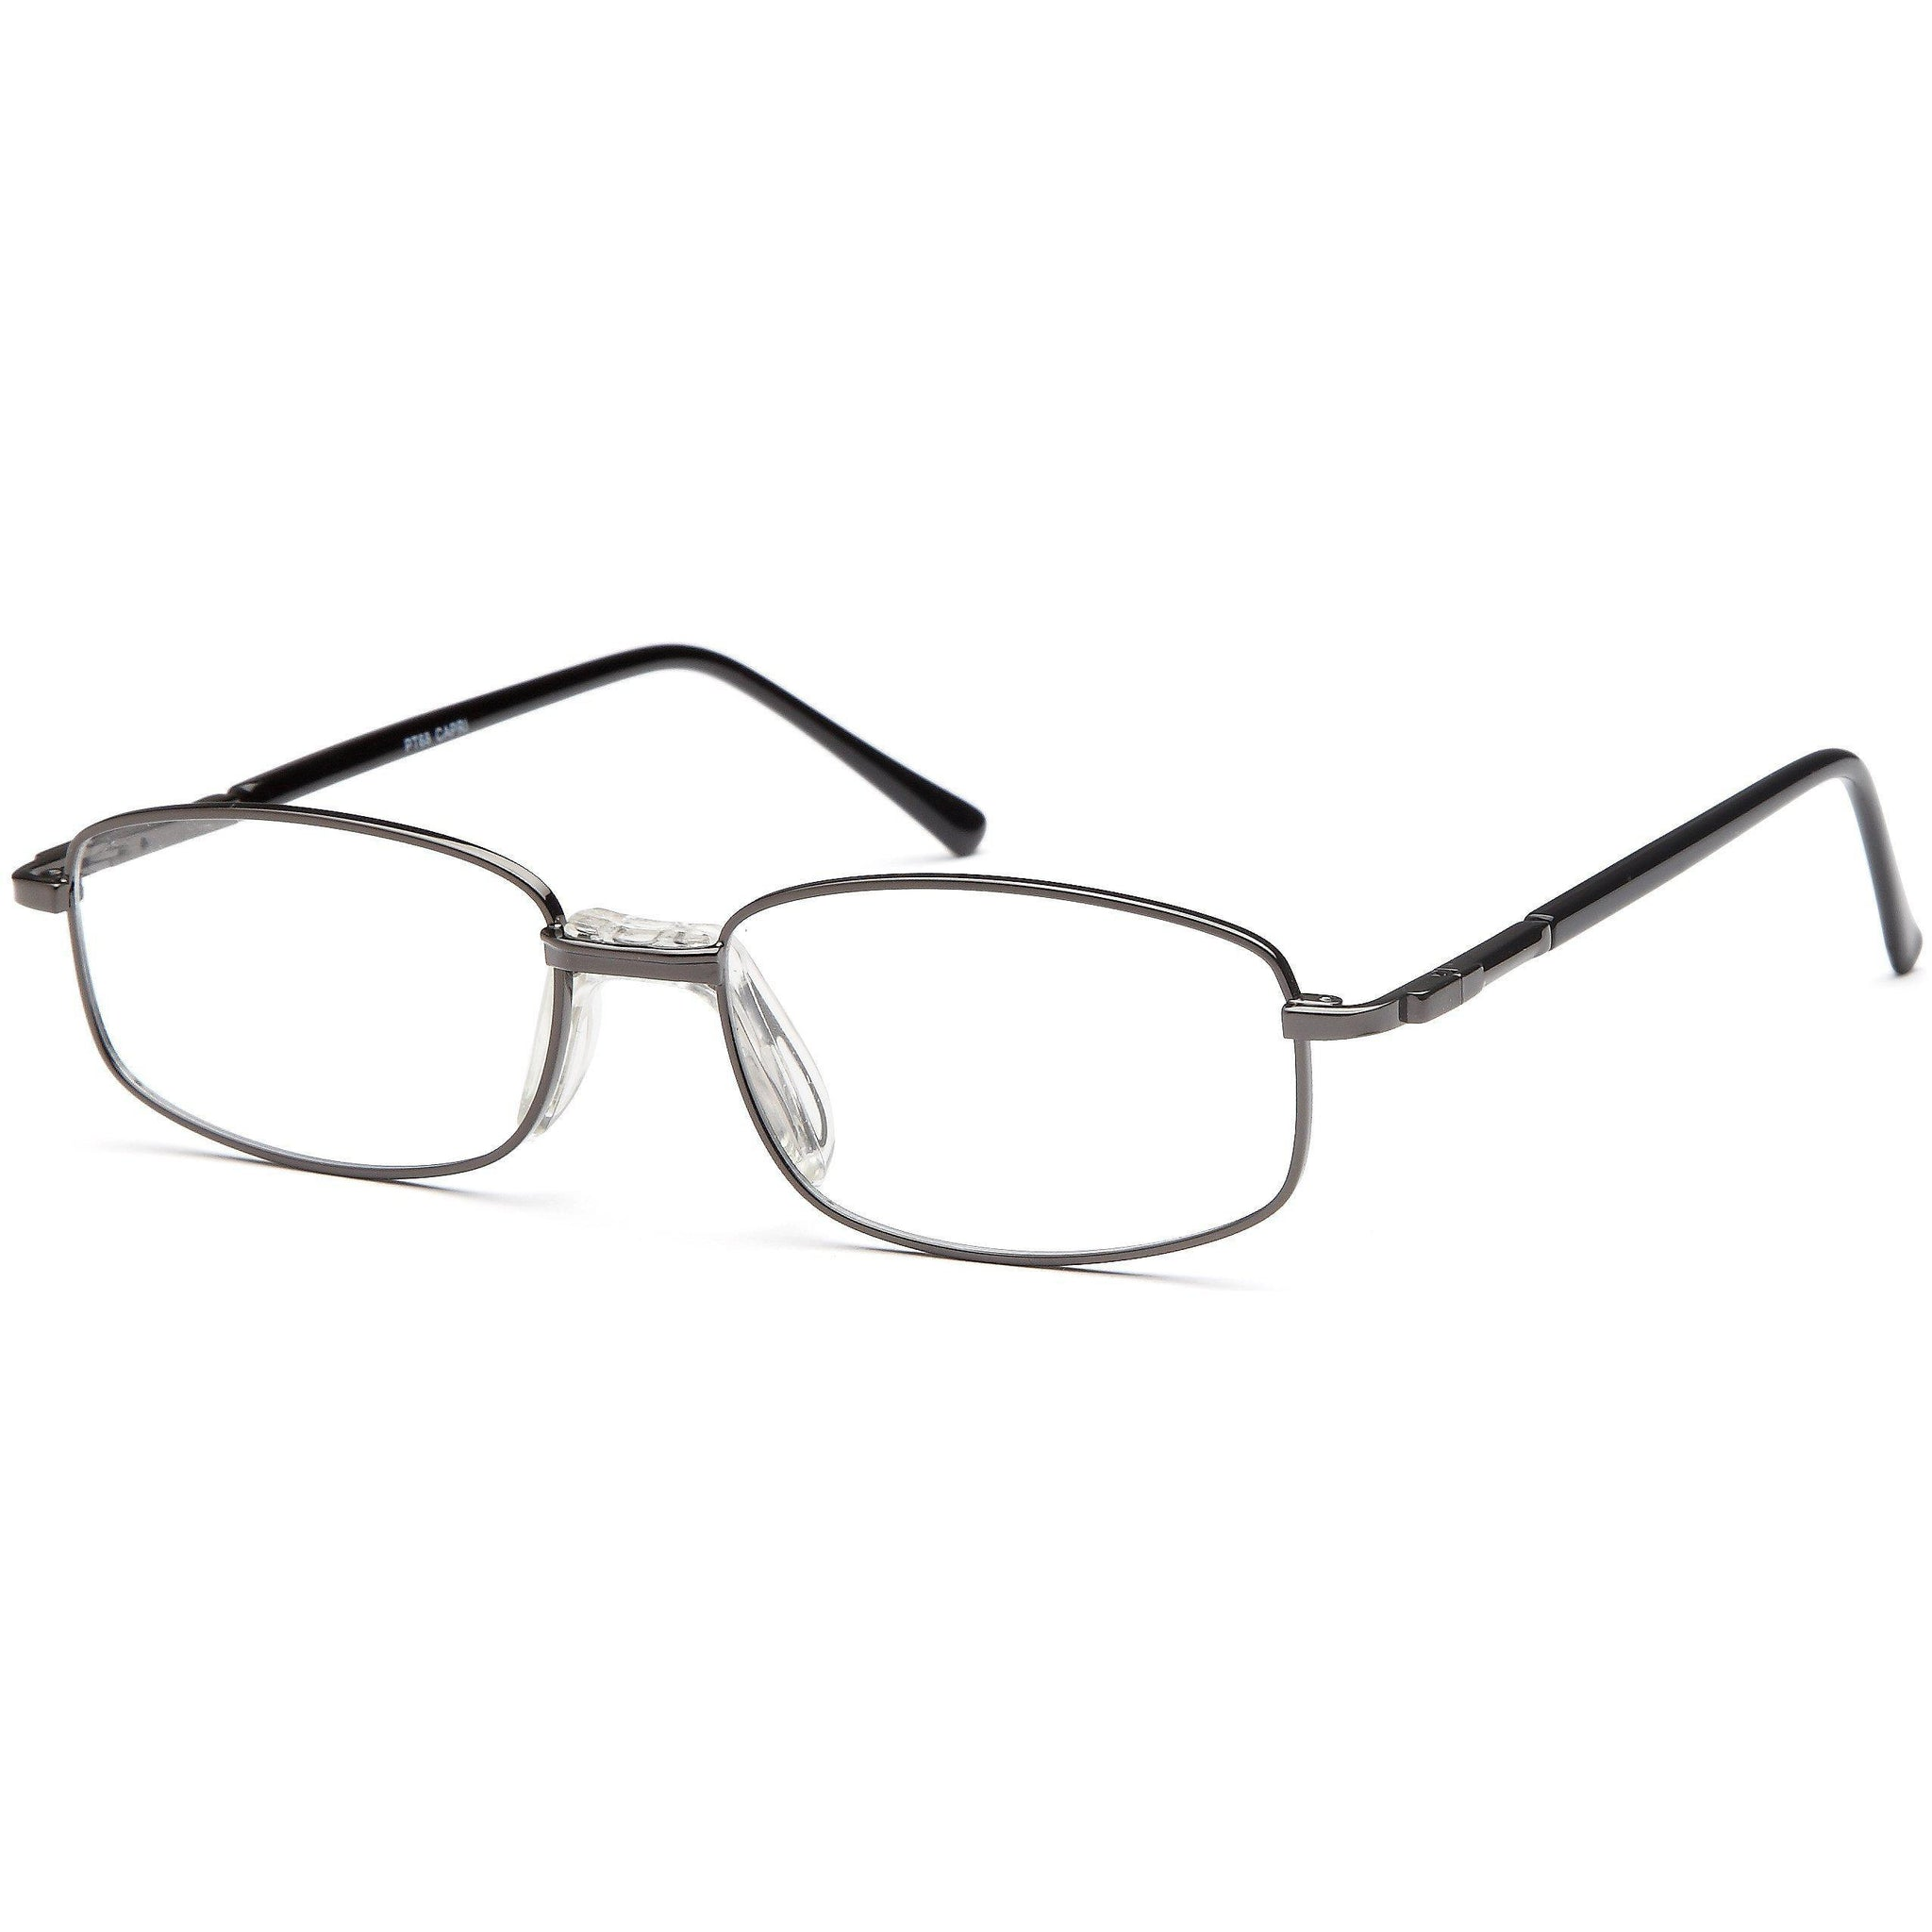 Appletree Prescription Glasses PT 68 Eyeglasses Frame